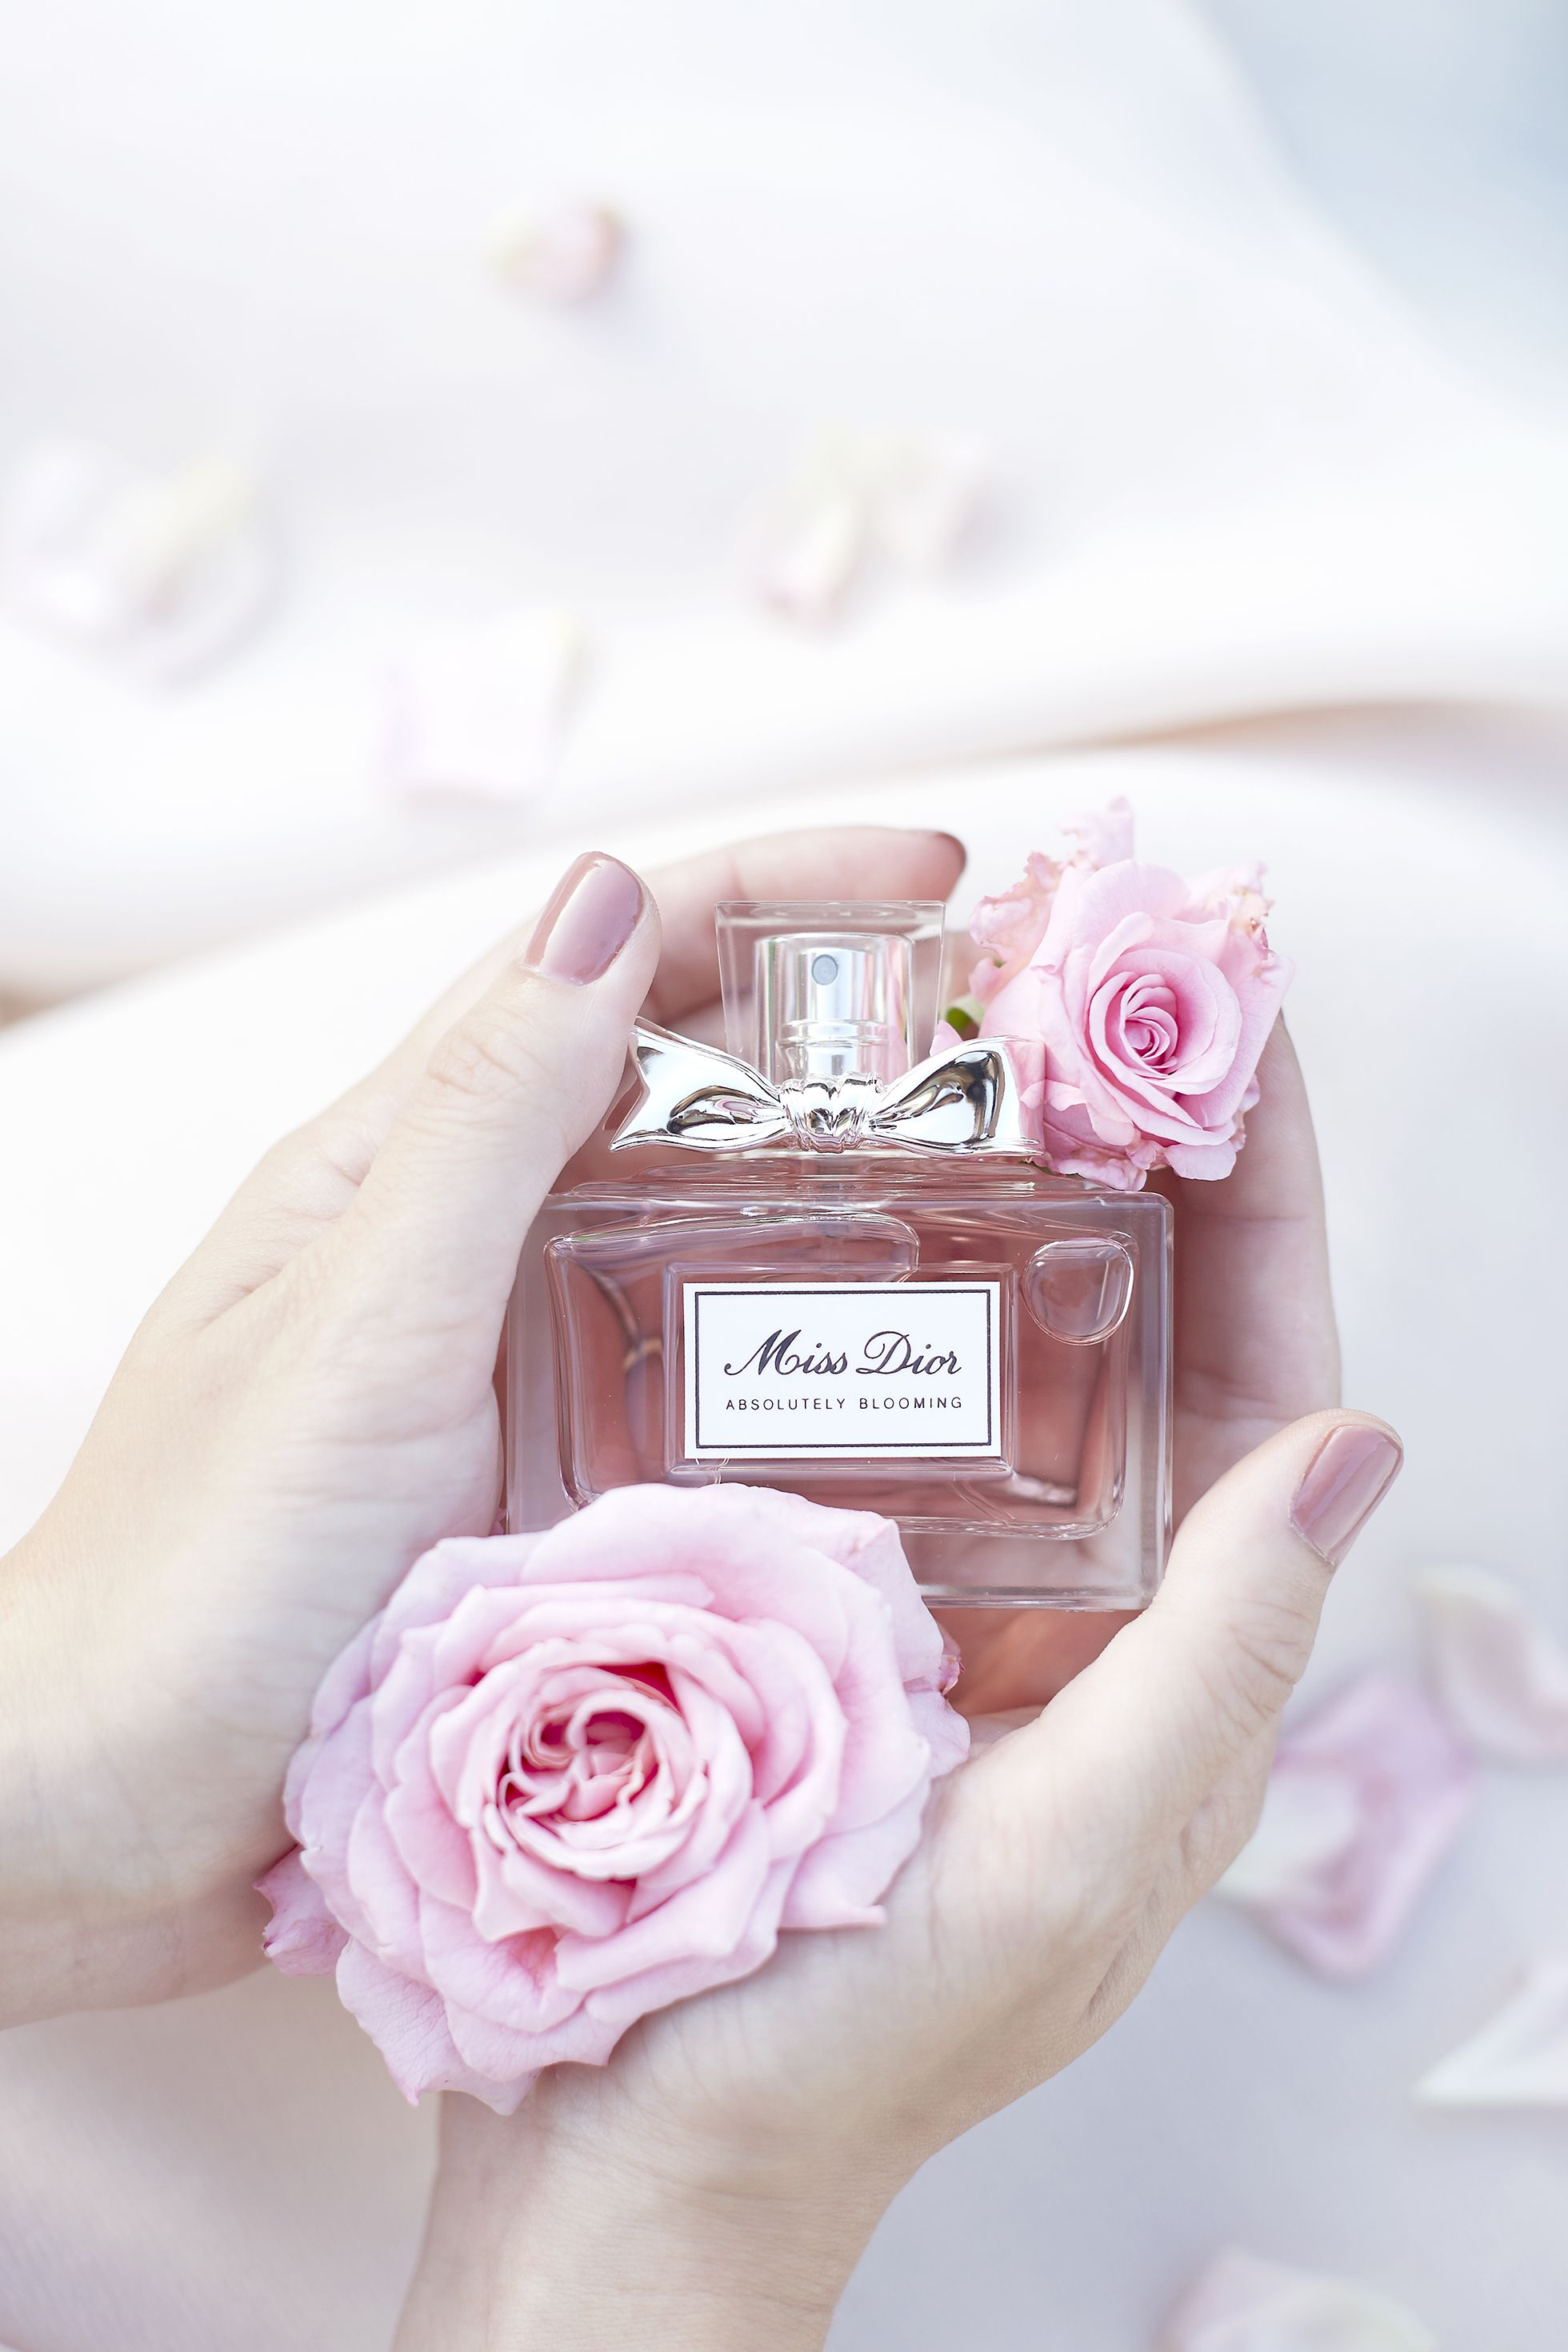 Miss dior absolutely blooming s m e l l i n g g o o d rosamaria g frangini high accessories designaccessories miss dior absolutely blooming eau de perfume izmirmasajfo